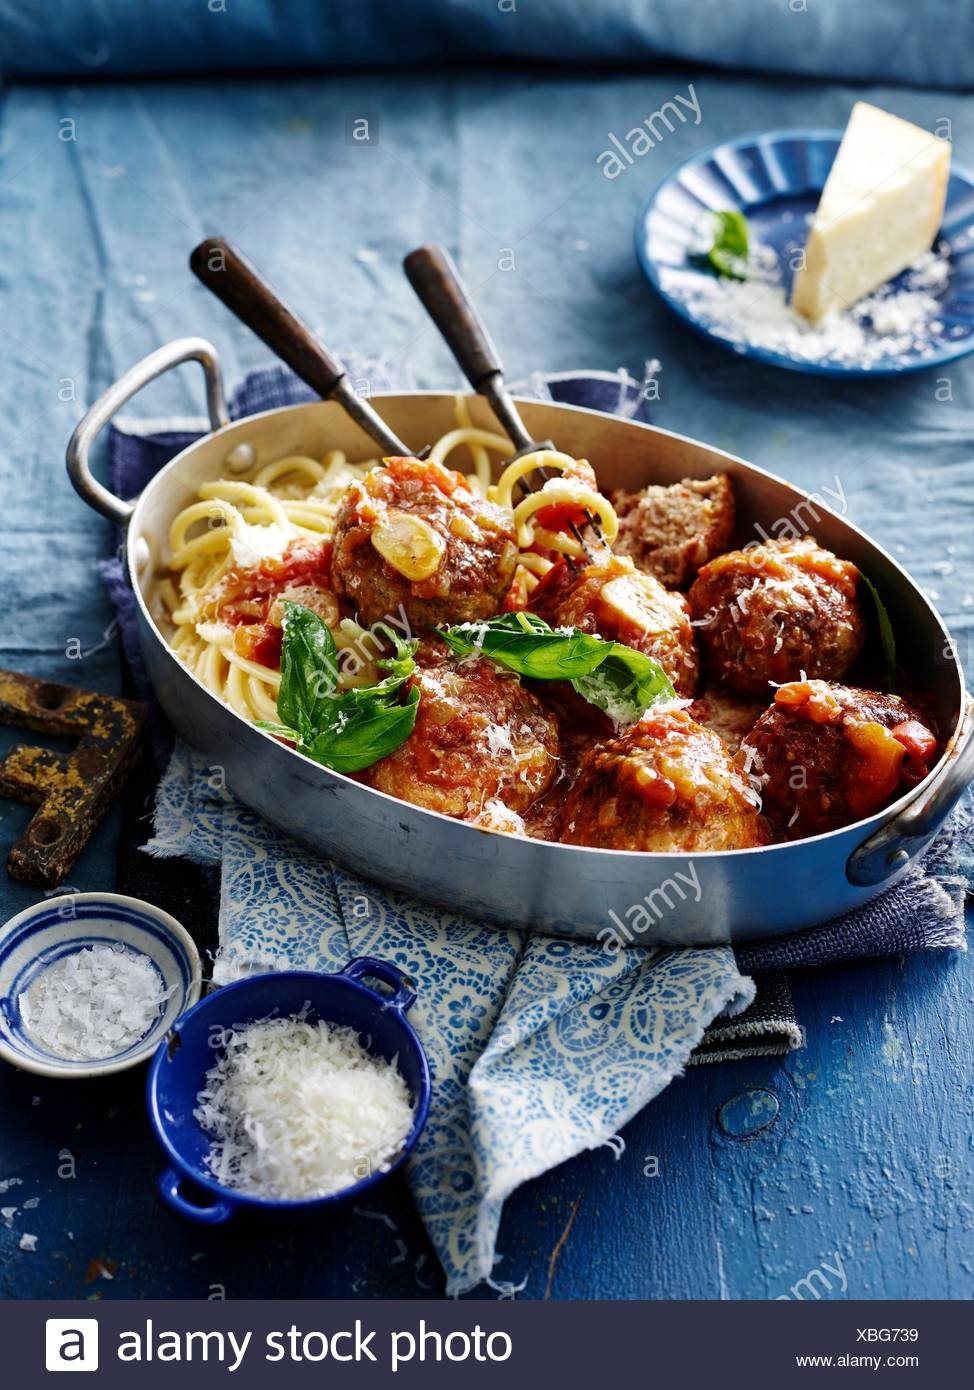 Pork meatballs with fennel seeds, close-up - Stock Image